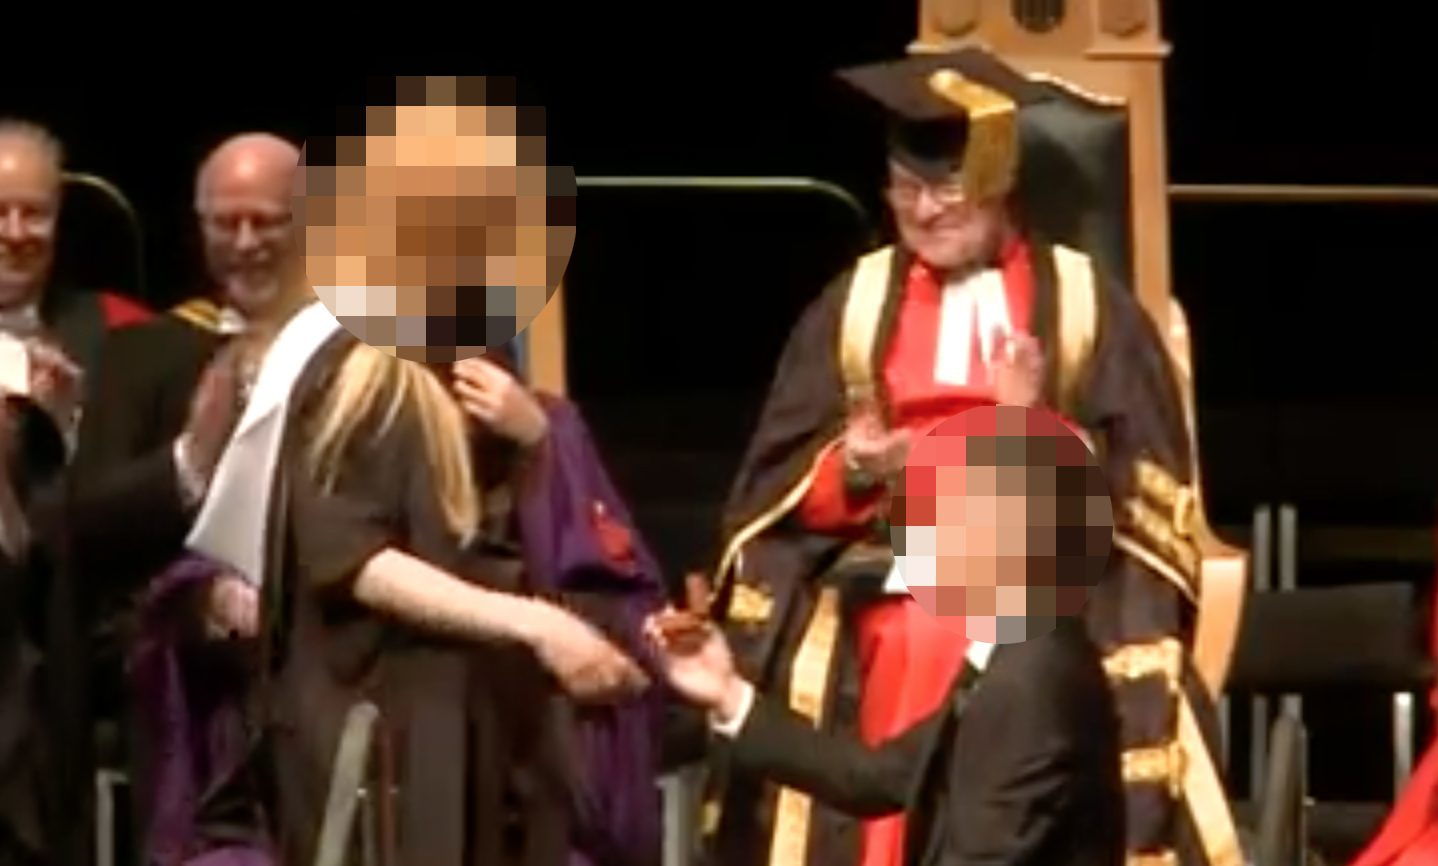 The marriage proposal backfires at Aberdeen University.